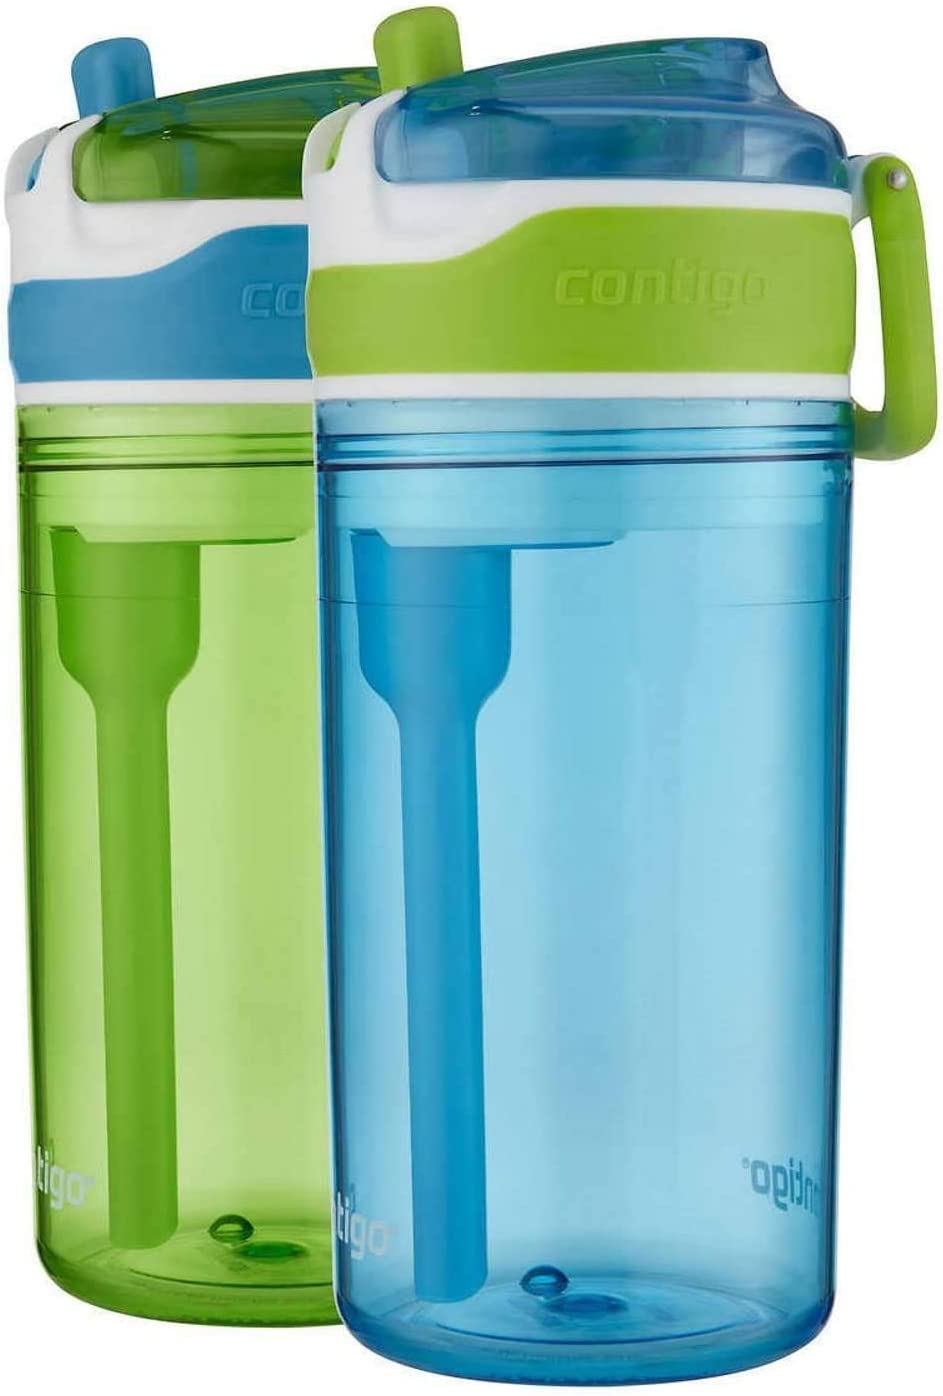 Amazon Com Contigo Kids 2 In 1 Snack Hero Tumbler Water Bottle Or Snack Container Green Blue 2 Pack Kitchen Dining